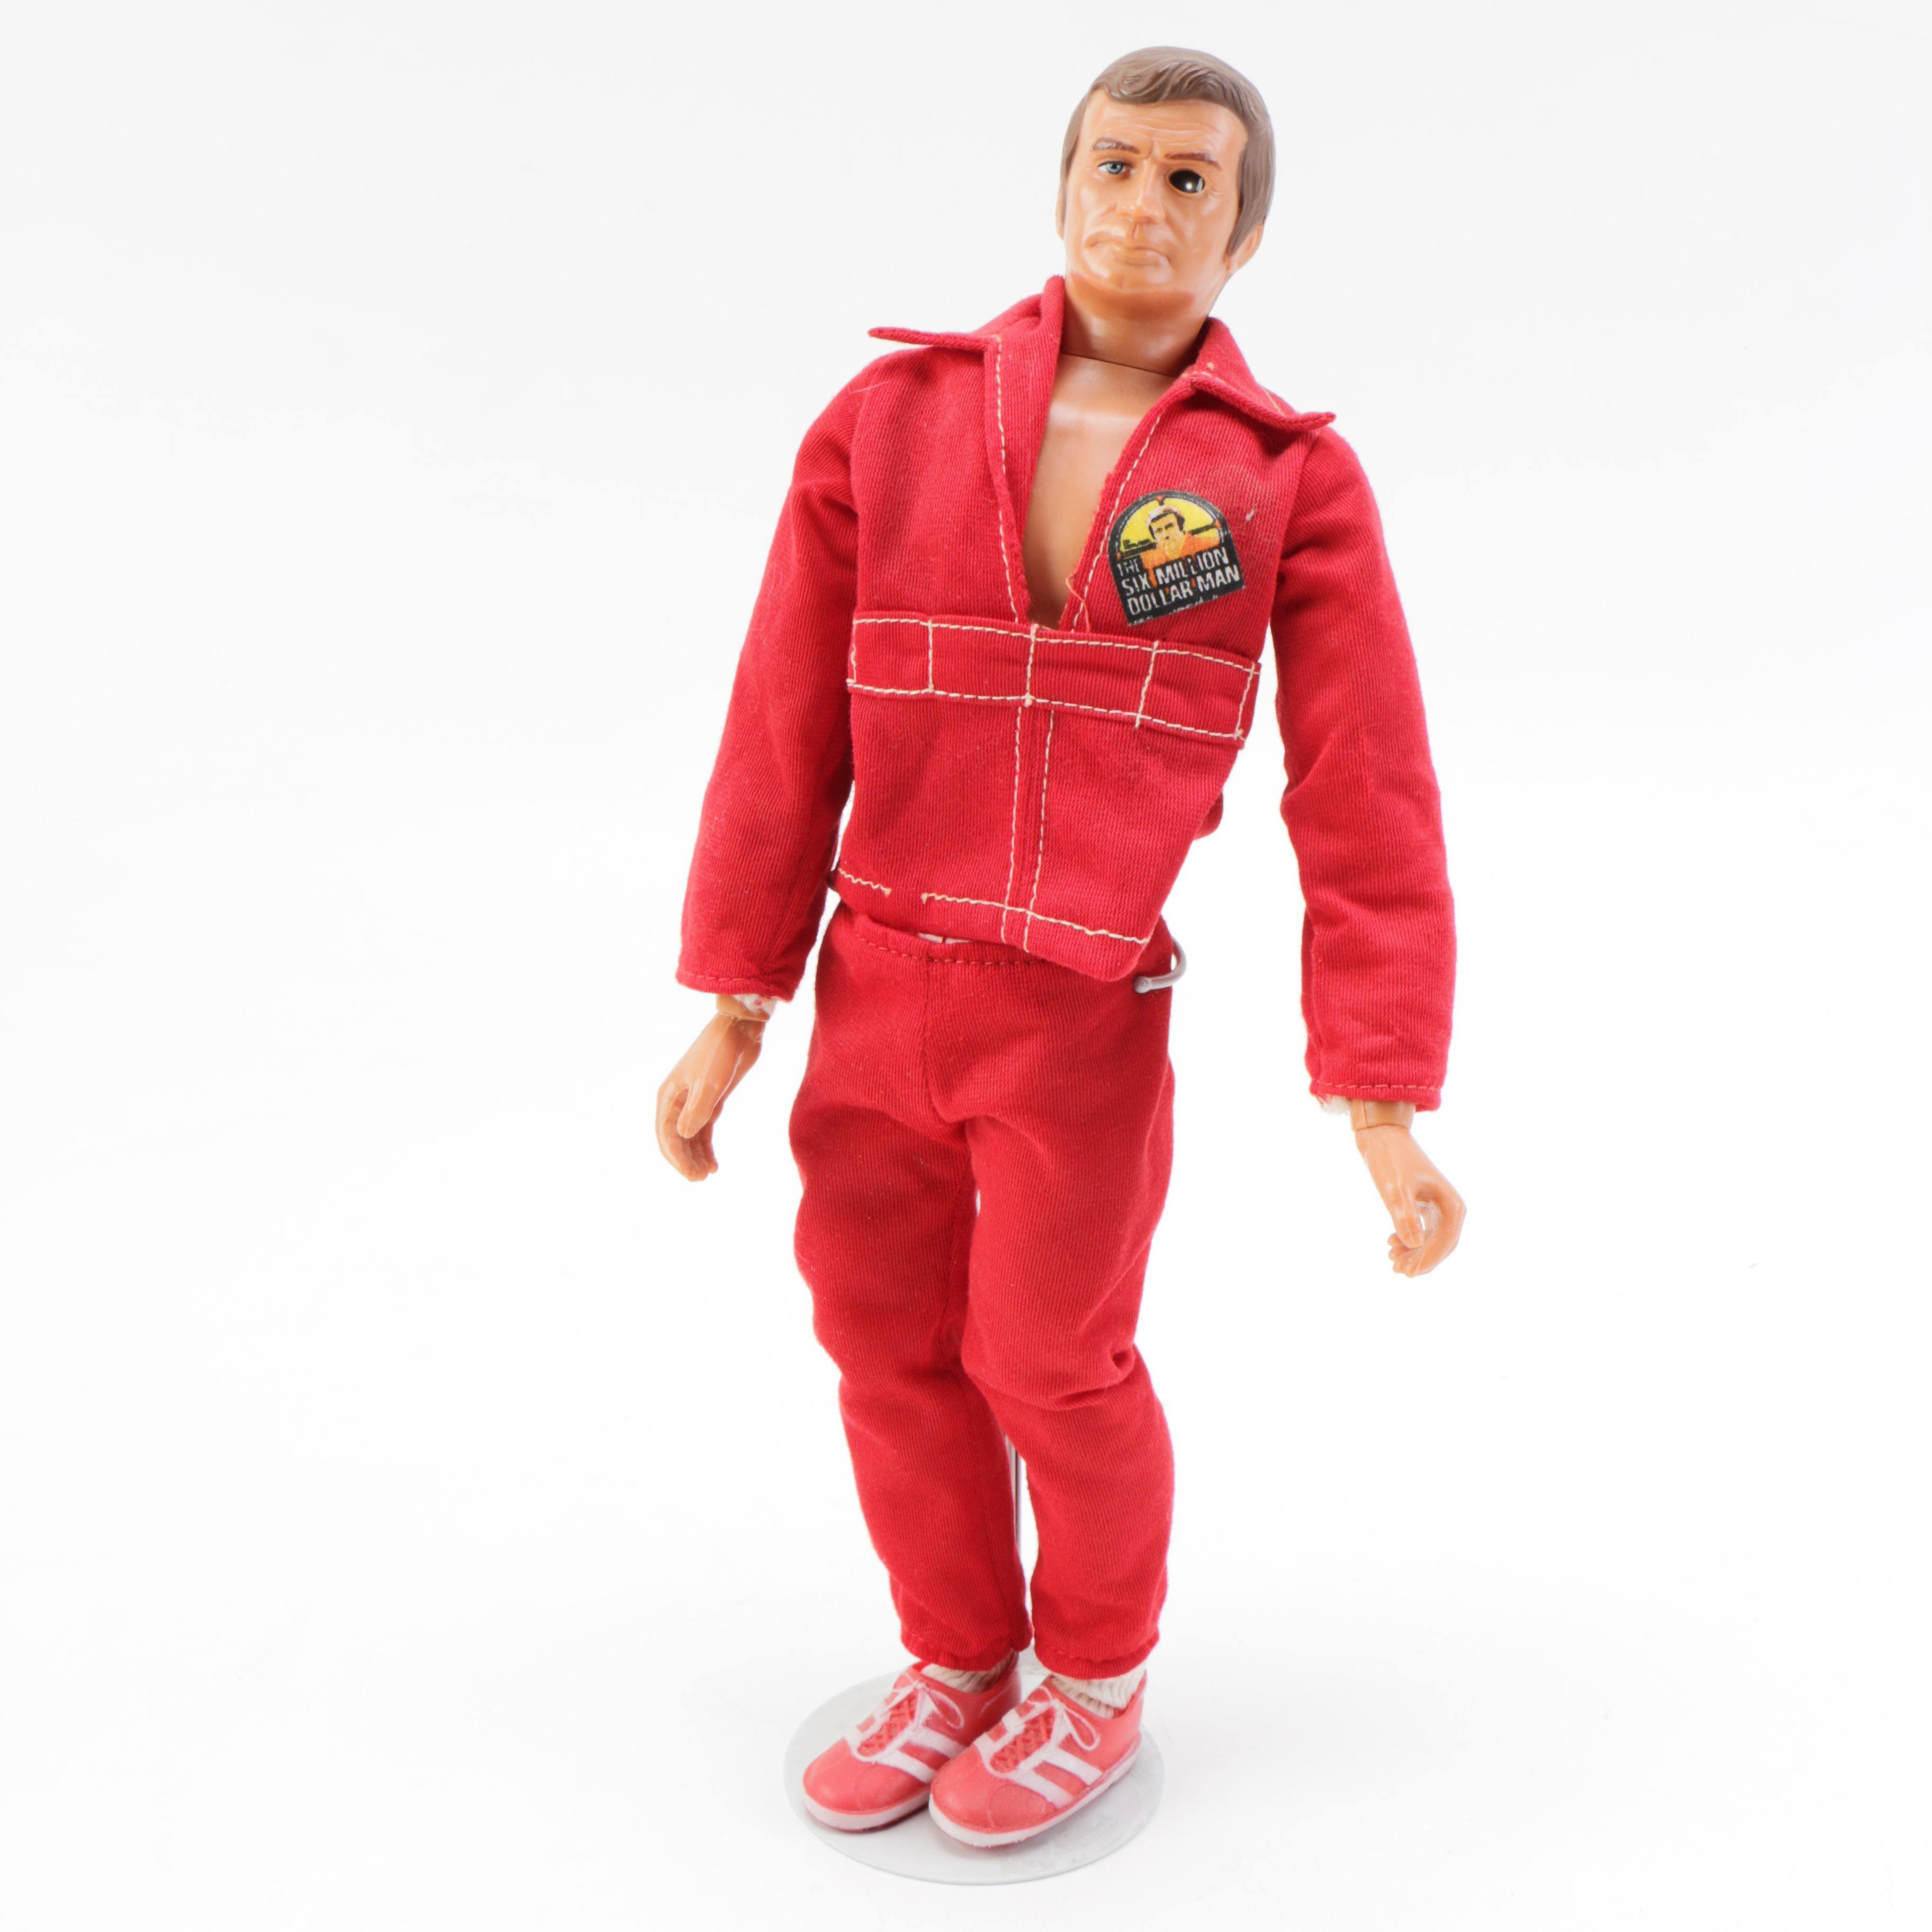 Vintage Six Million Dollar Man Doll